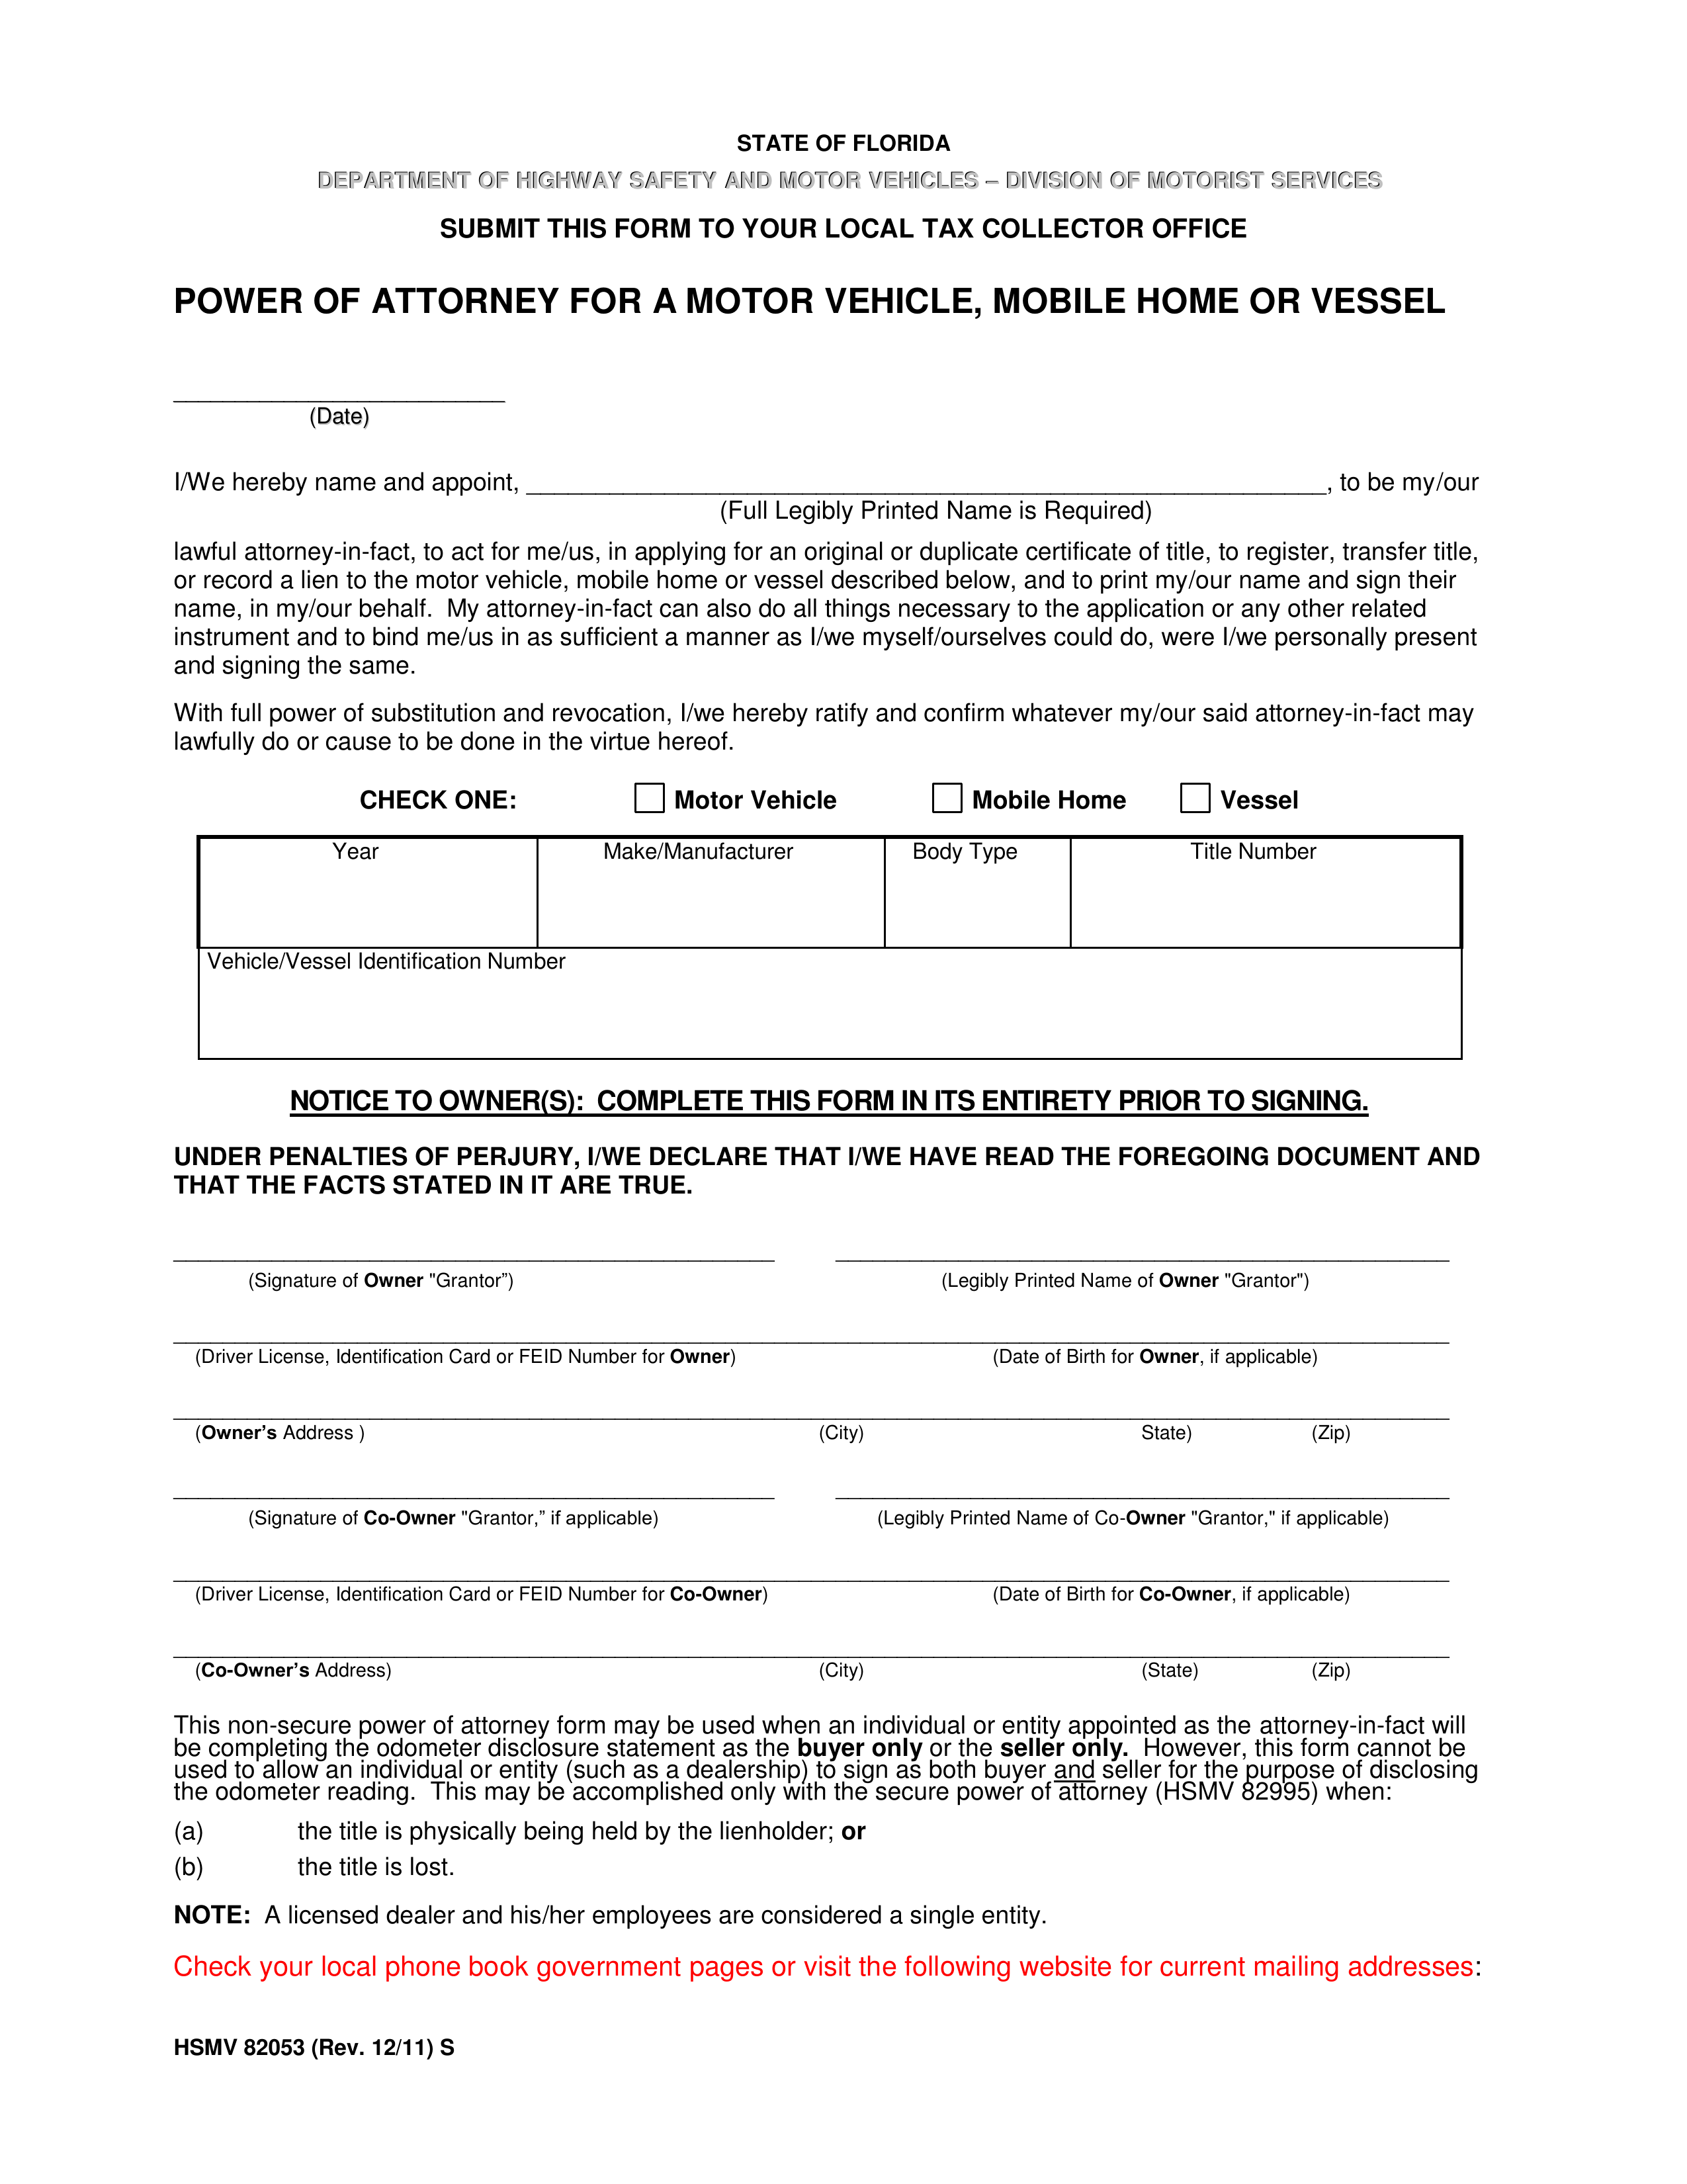 Free Florida Motor Vehicle Power Of Attorney Form HSMV